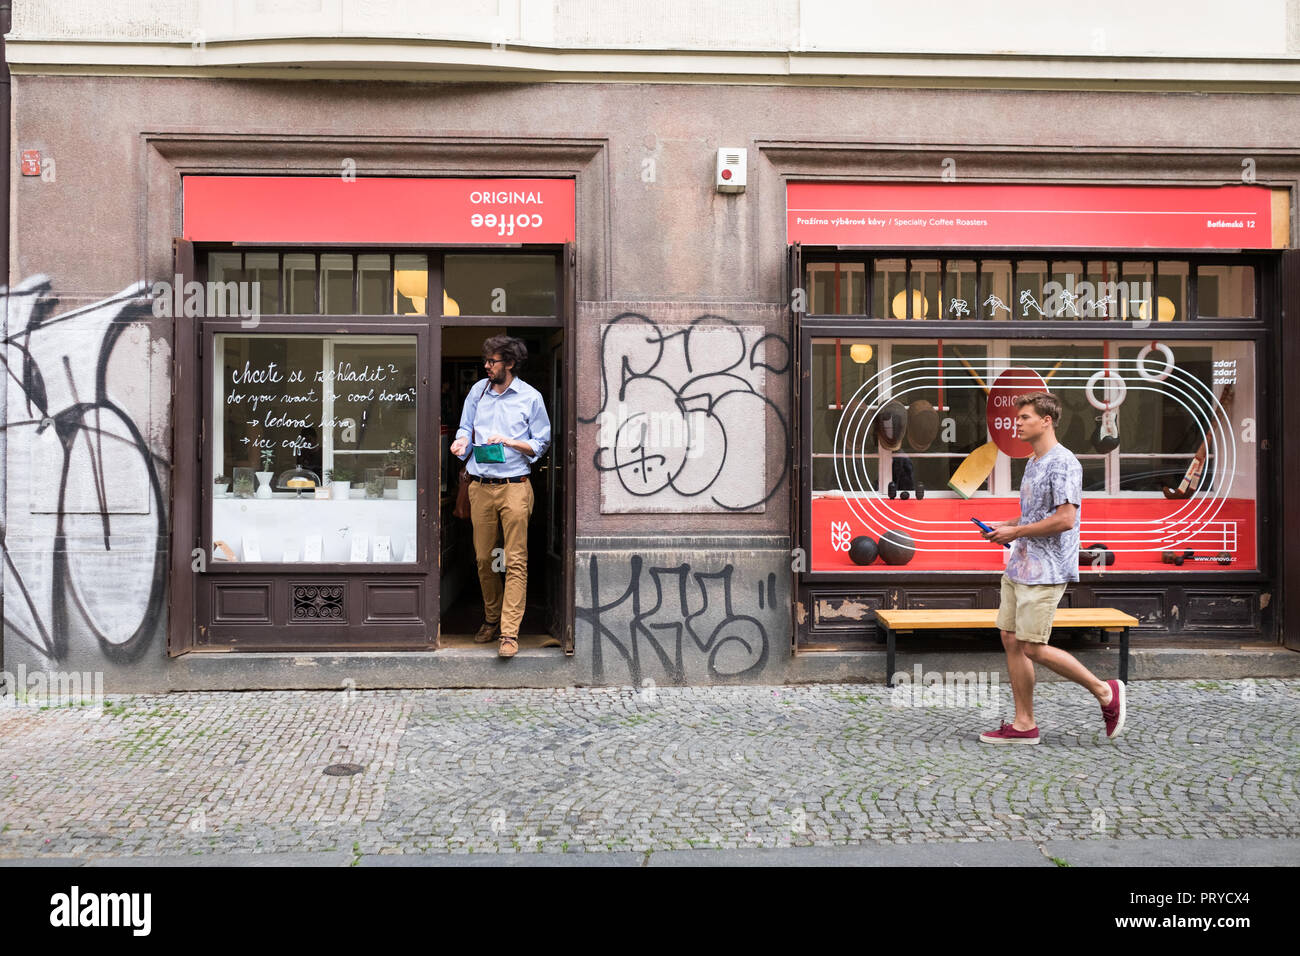 Exterior of Original Coffee - specialty coffee roasters in Prague, Czech Republic - Stock Image